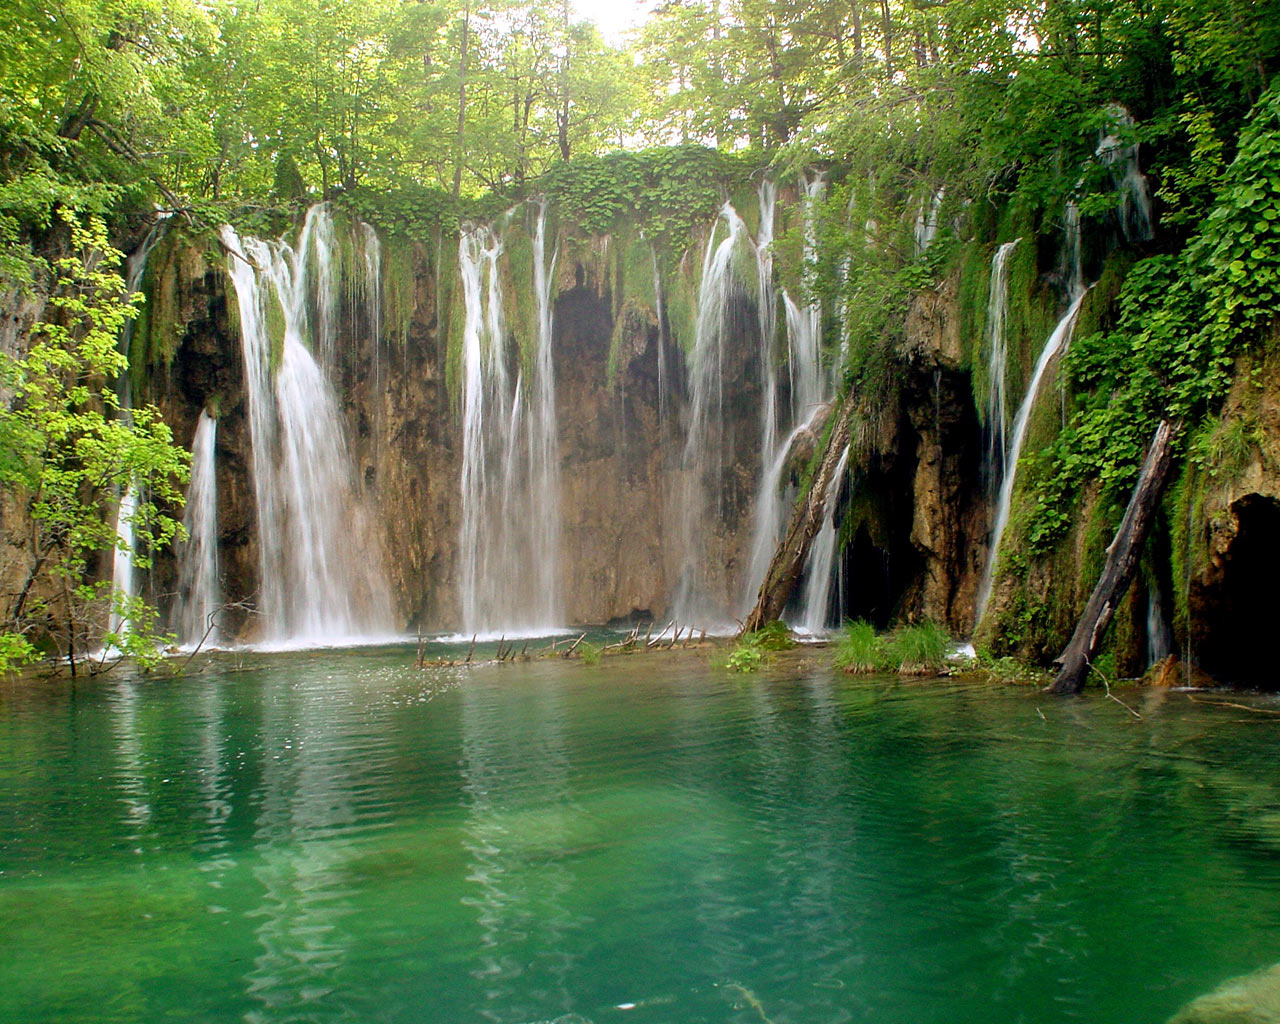 Waterfall Wallpapers   Best Waterfall Wallpapers 1280x1024